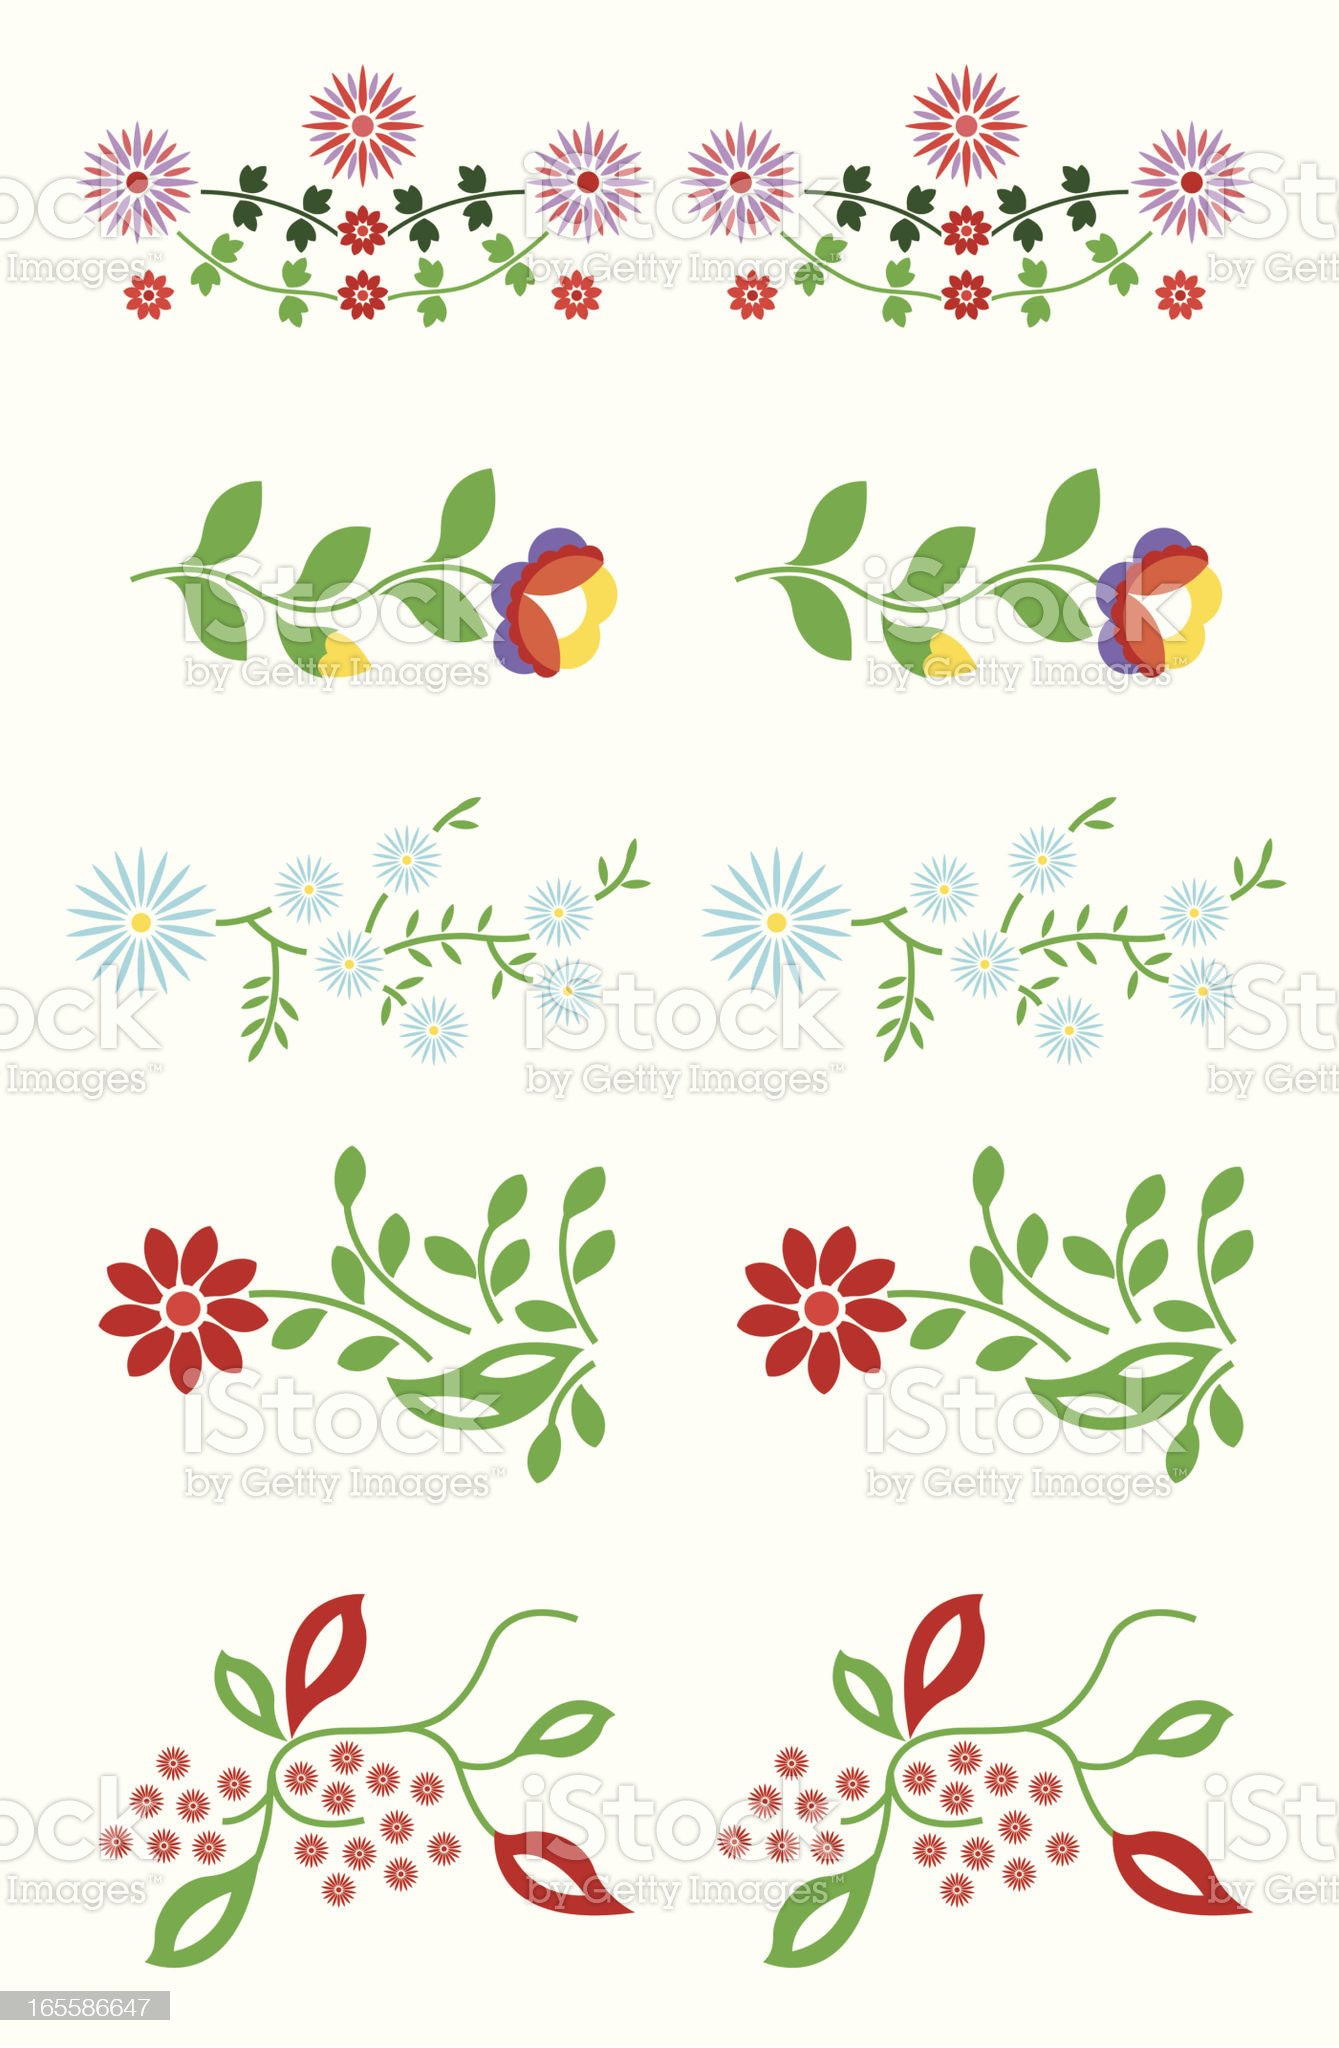 Floral element royalty-free stock vector art